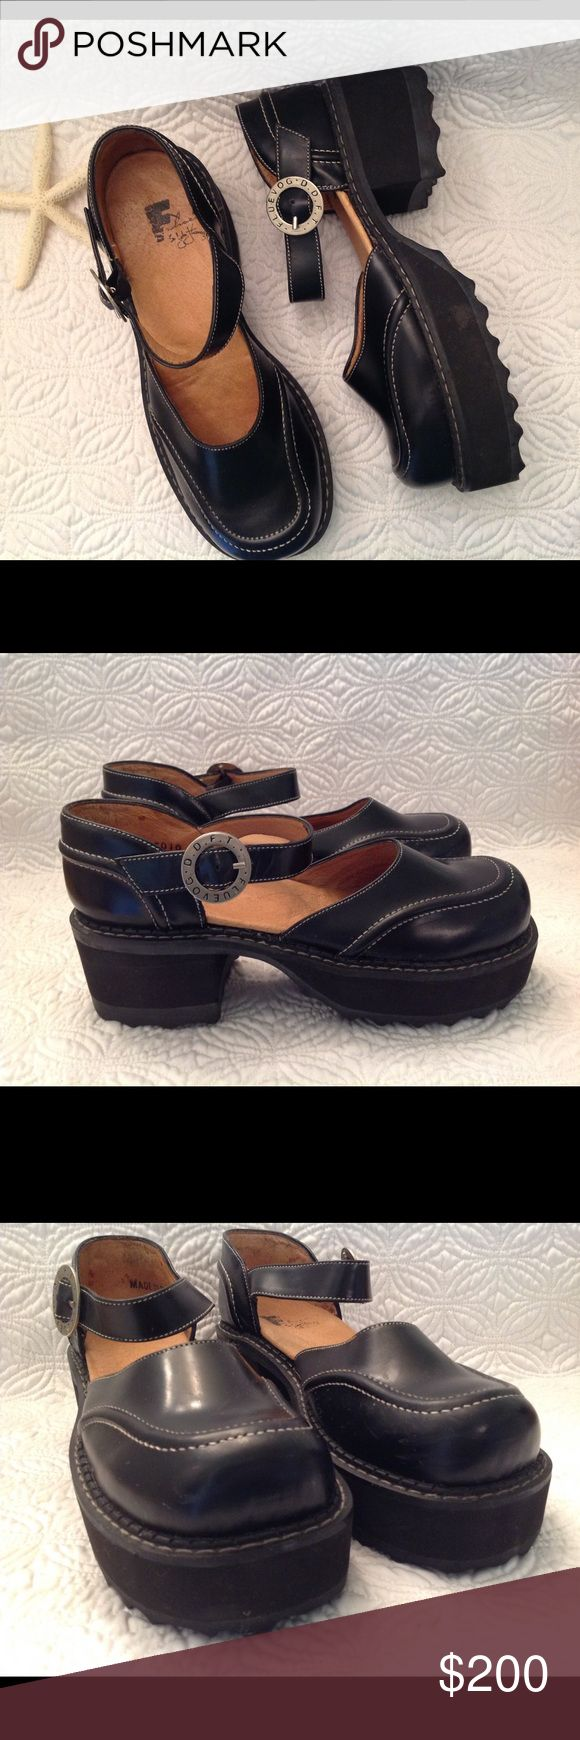 Johnson Fluevog Black Chunky Platform Mary Janes Gently pre-owned. Minor scuffing on the leather uppers. Smoke free home. John Fluevog Shoes Platforms